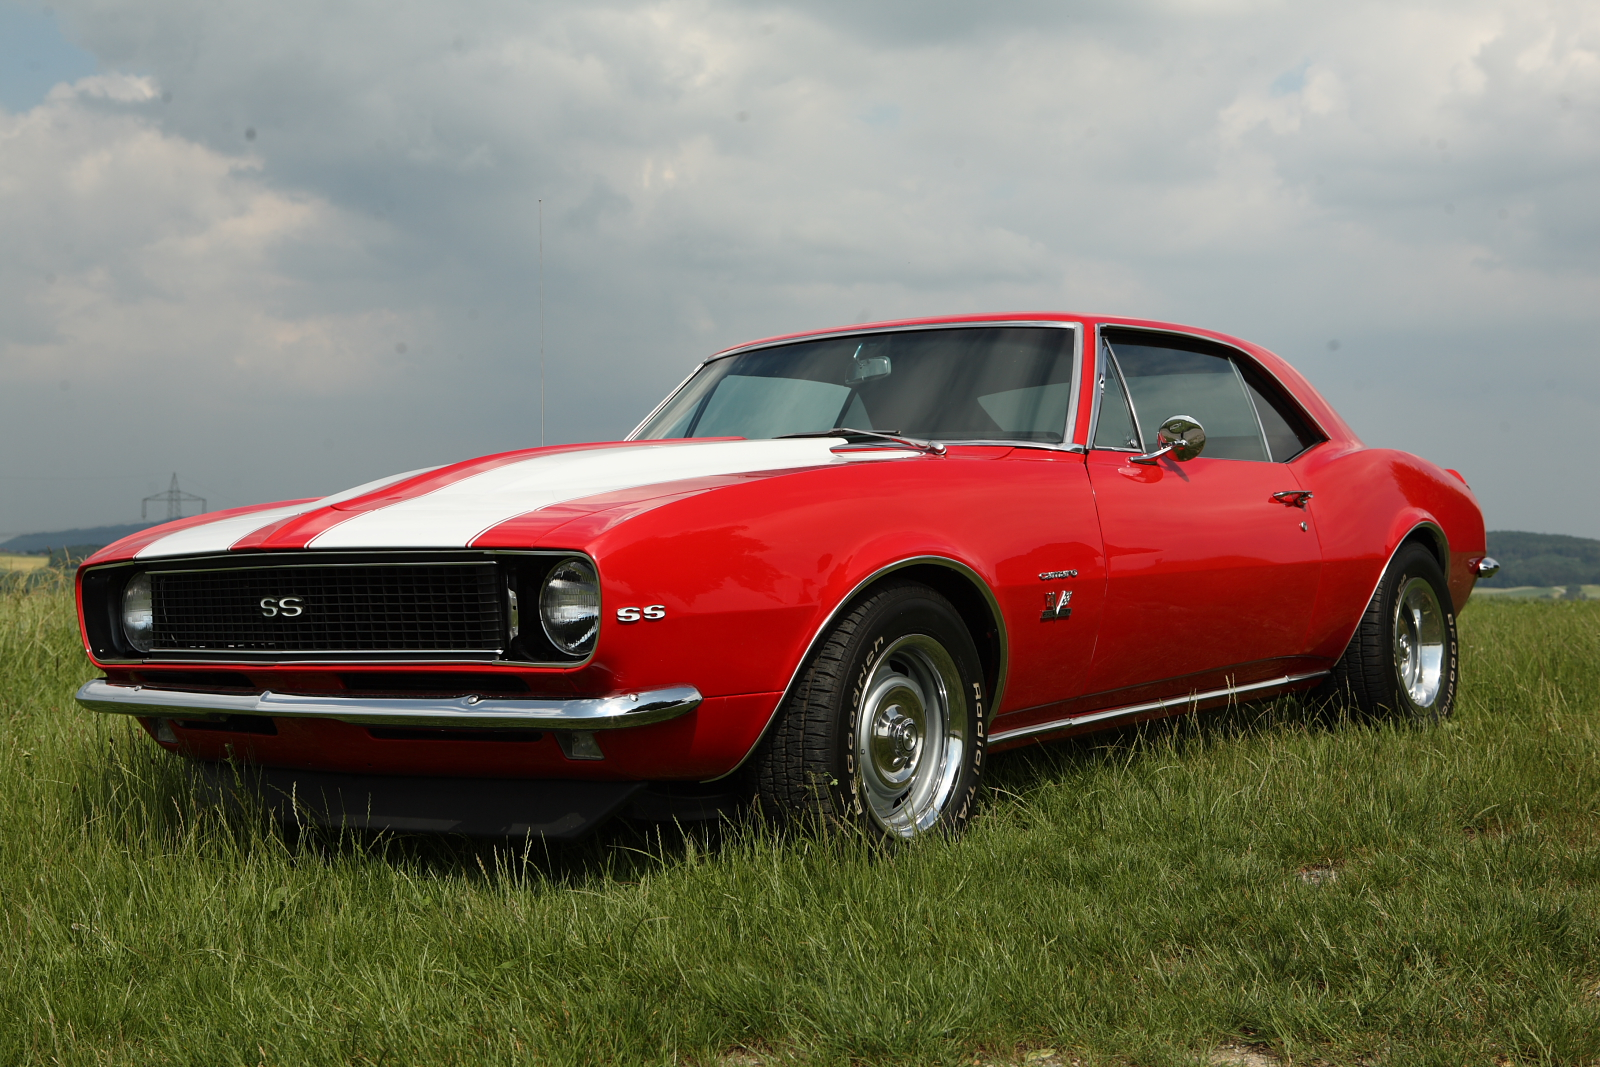 File 2008 06 12 Camaro Ss 1967 00001 Jpg Wikimedia Commons